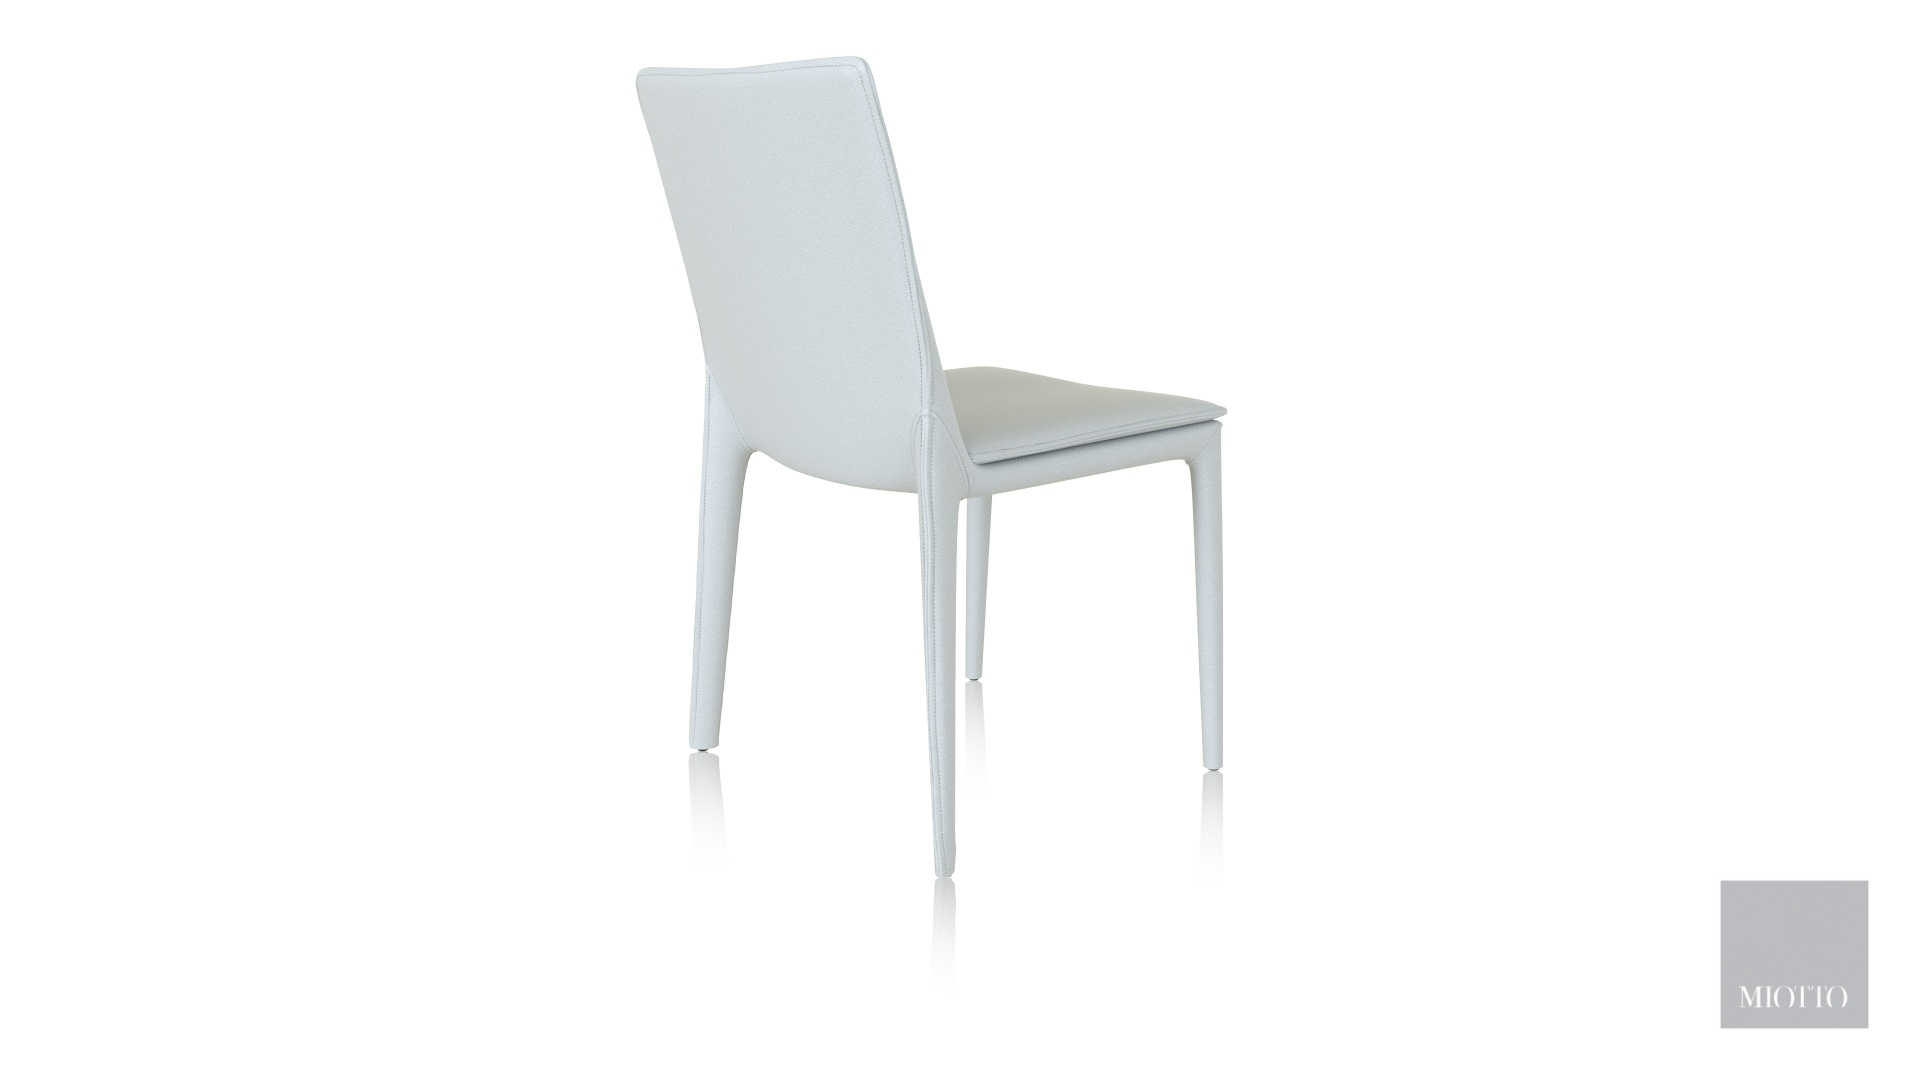 miotto_torano DC back white T miotto dining chair furniture